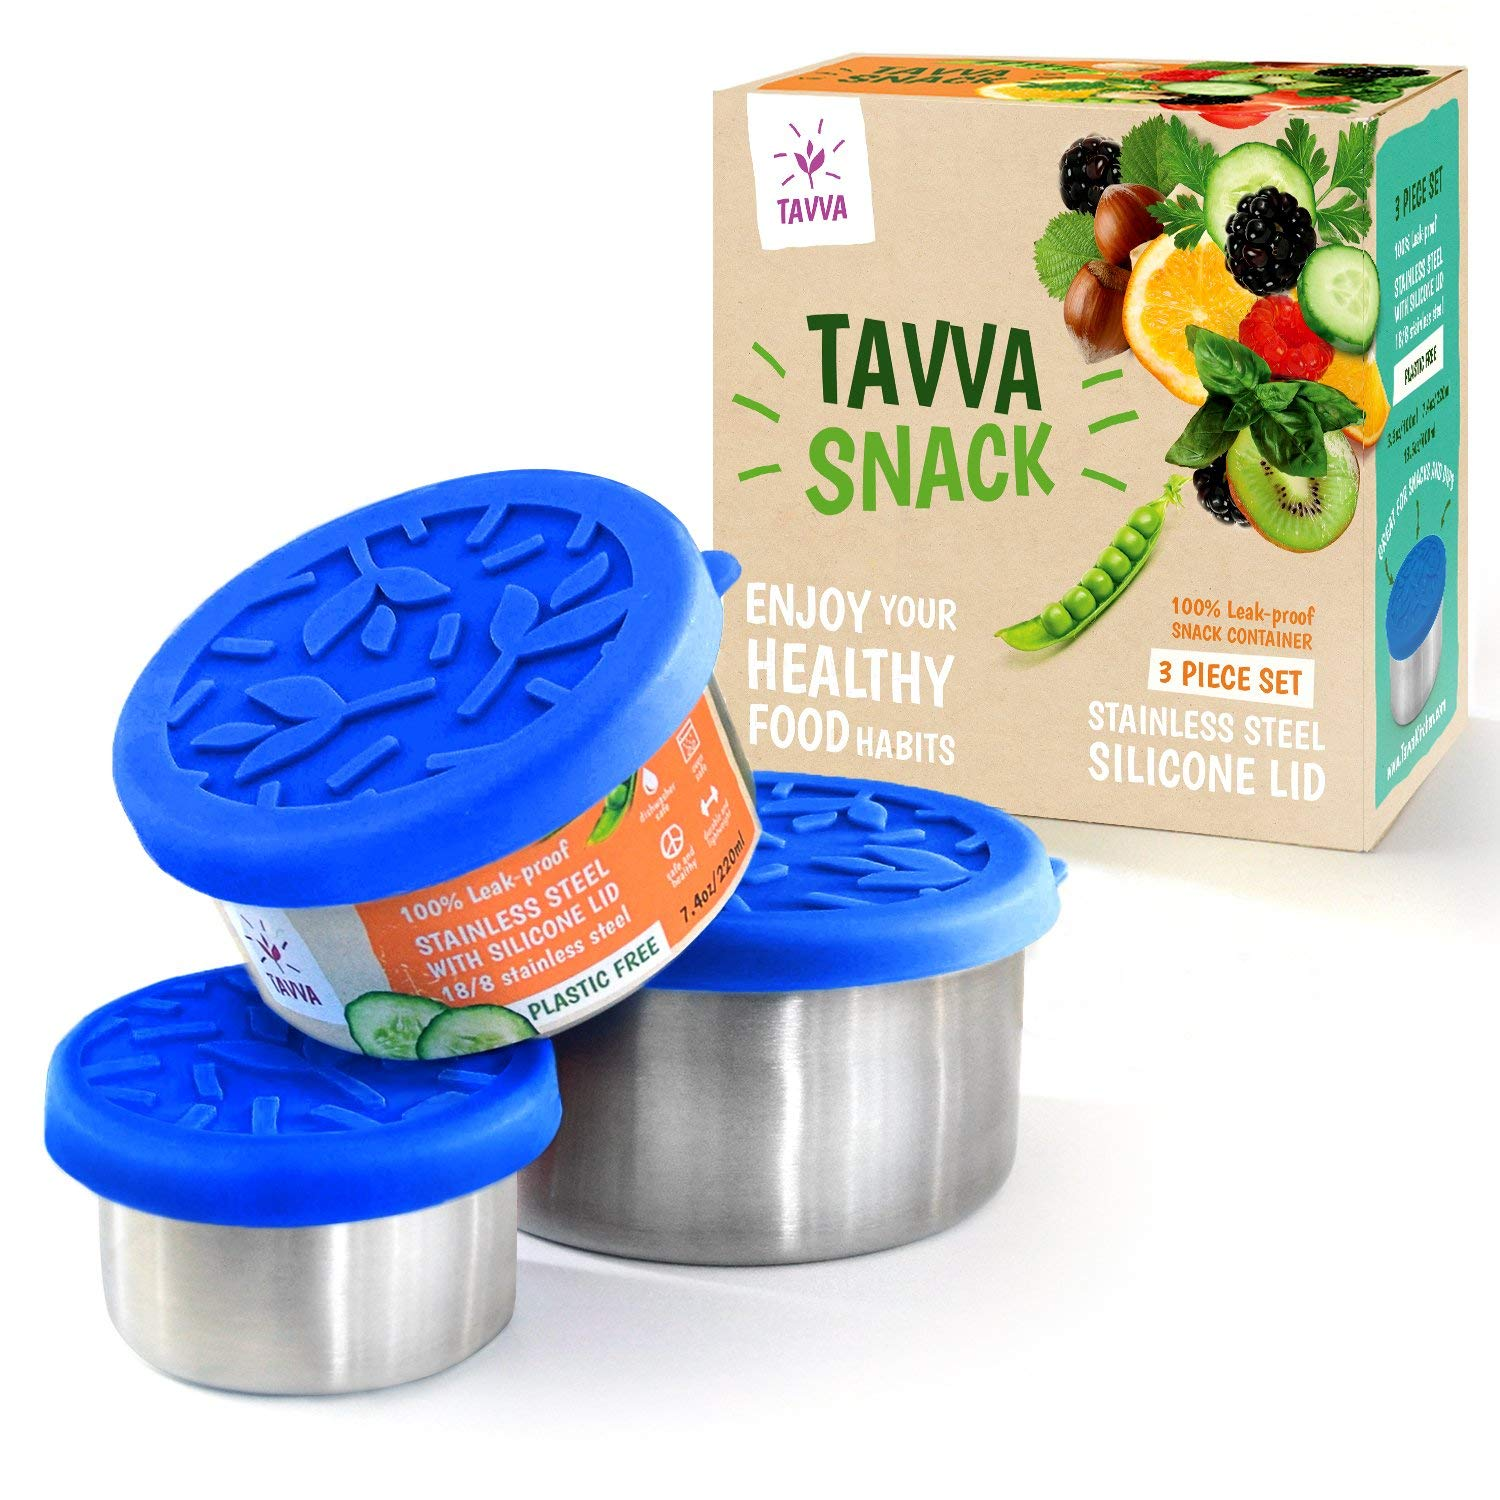 TAVVA Snack Containers Set - 3 Stainless Steel Food Containers with Food-Grade Silicone Lids - Portion Control Feature - Leak-Proof and Reusable - Also Suitable for Baby Food and Spice Storage